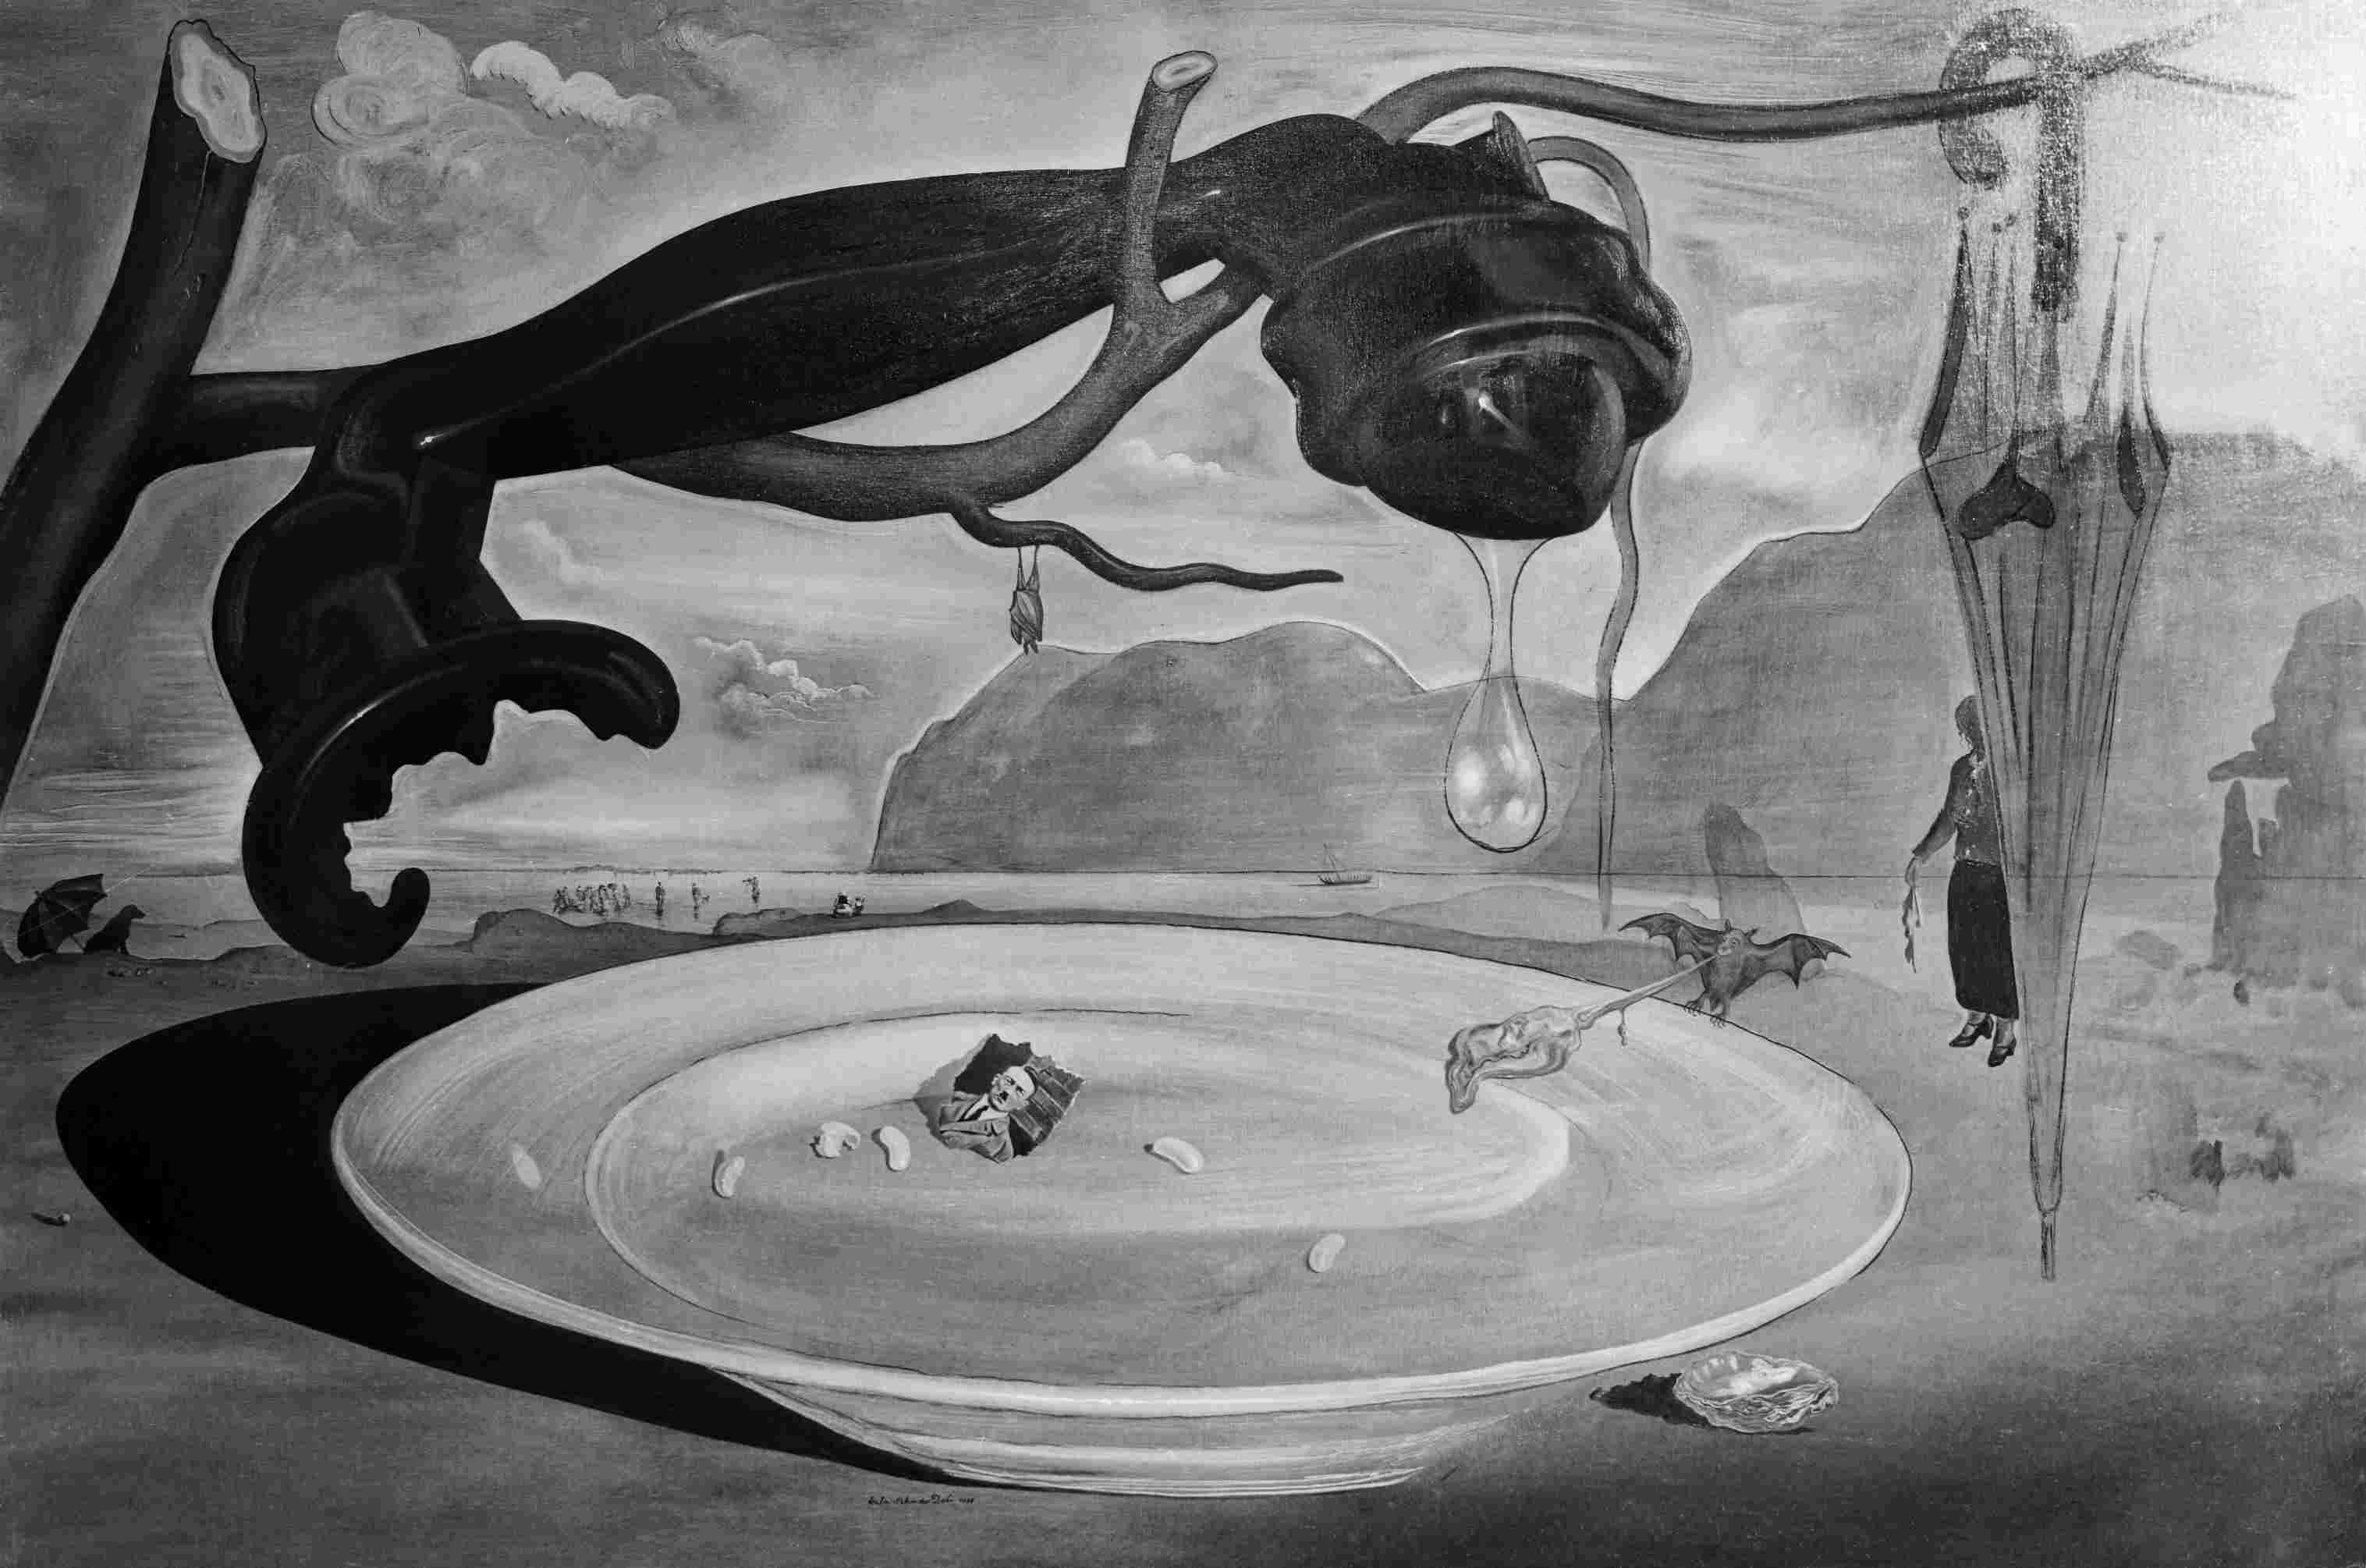 Surreal painting of a melting telephone, a bat, and a torn photo of Hitler on a dinner plate